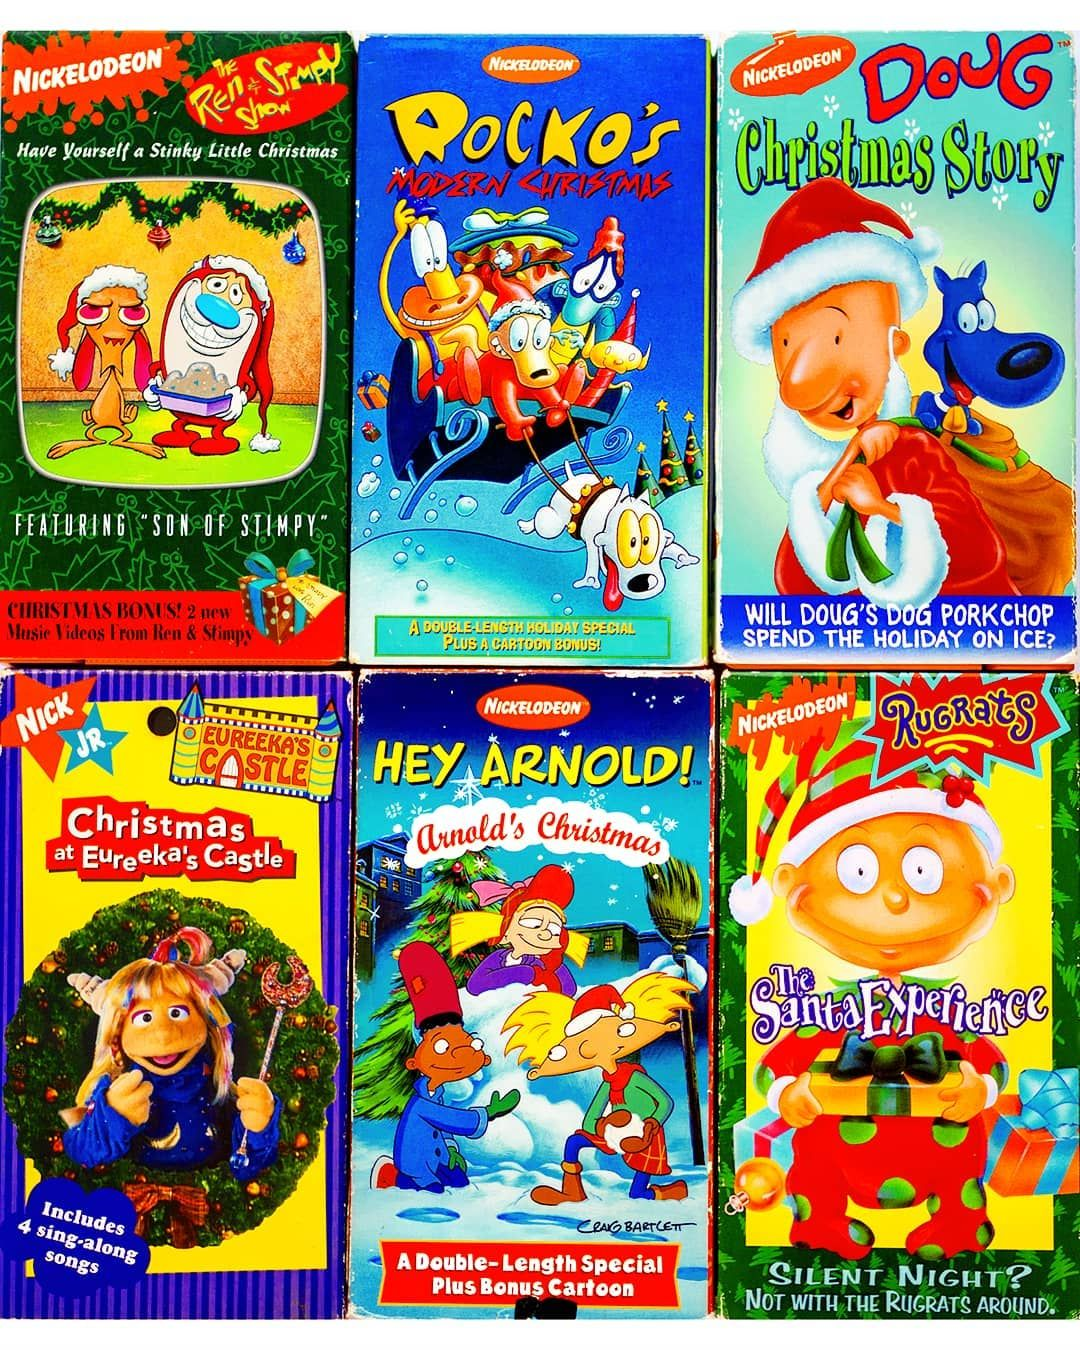 Nickelodeon Christmas Specials.Nickmas Vhs Tapes Nickelodeon Always Brought Some Of